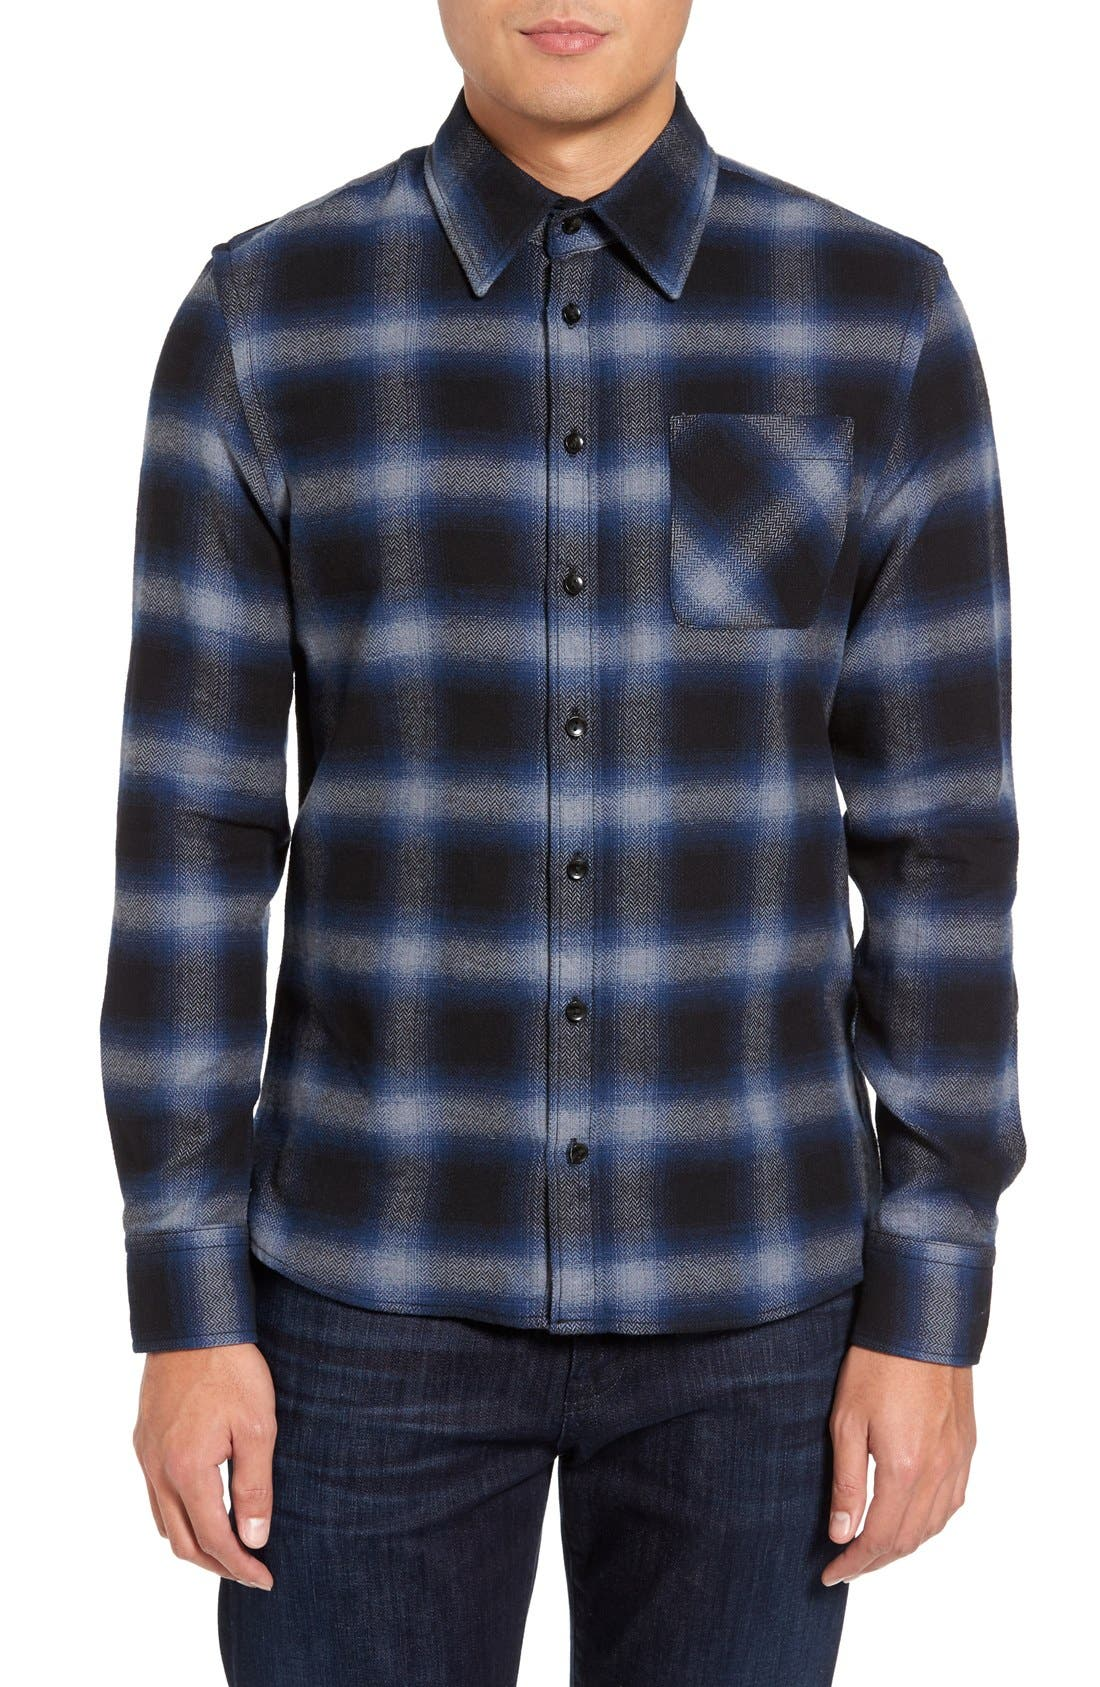 Michael Slim Fit Plaid Flannel Shirt,                             Main thumbnail 1, color,                             Blue